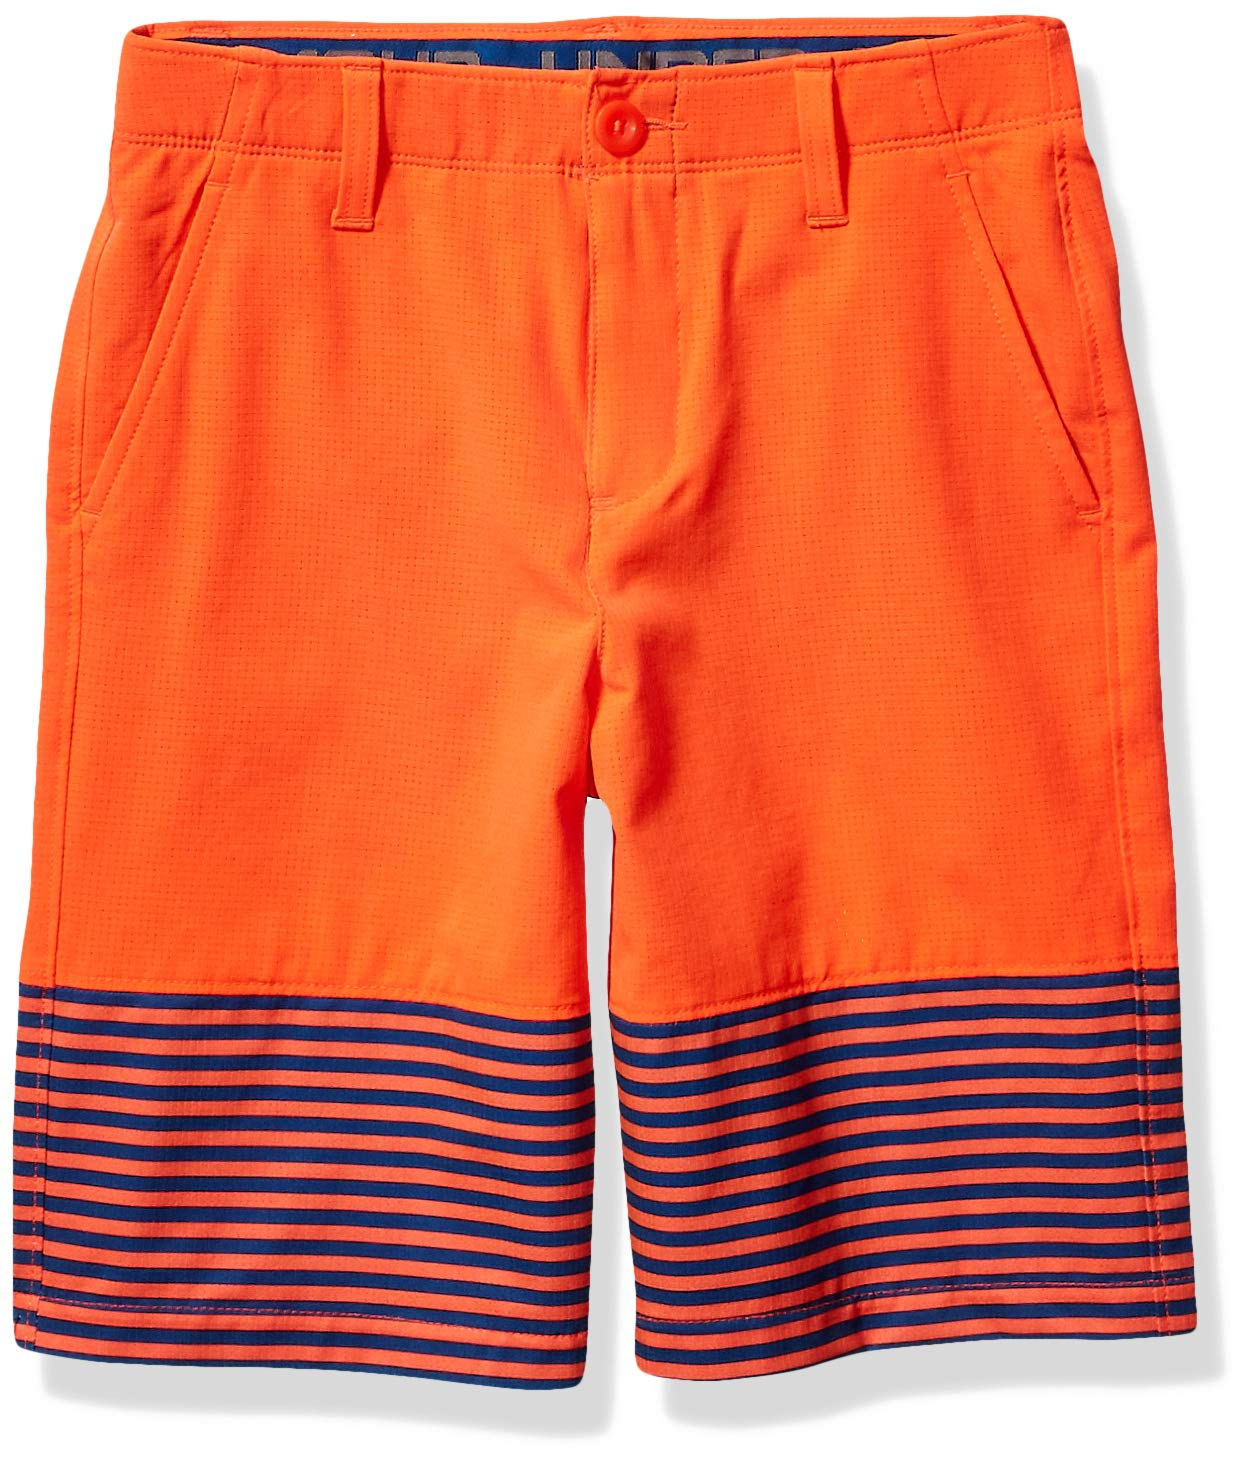 Under Armour Boys' MP Vented Nov Short, Neon Coral (985)/Neon Coral, 7